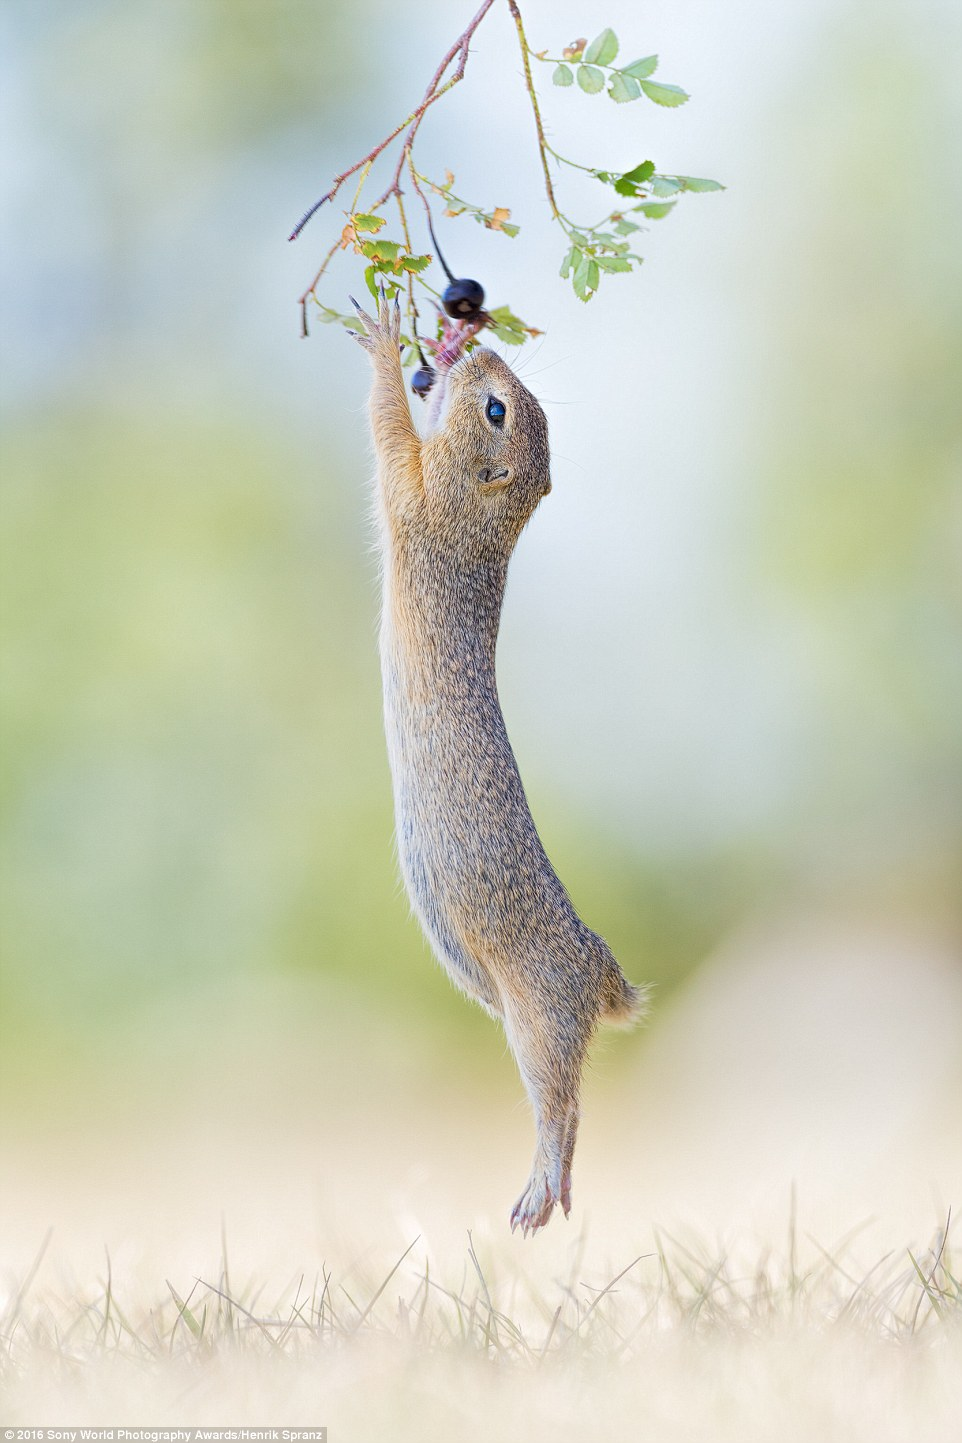 Henrik Spranz from Germany sent in his incredible image of a cute critter jumping up to reach wild berries for its lunch